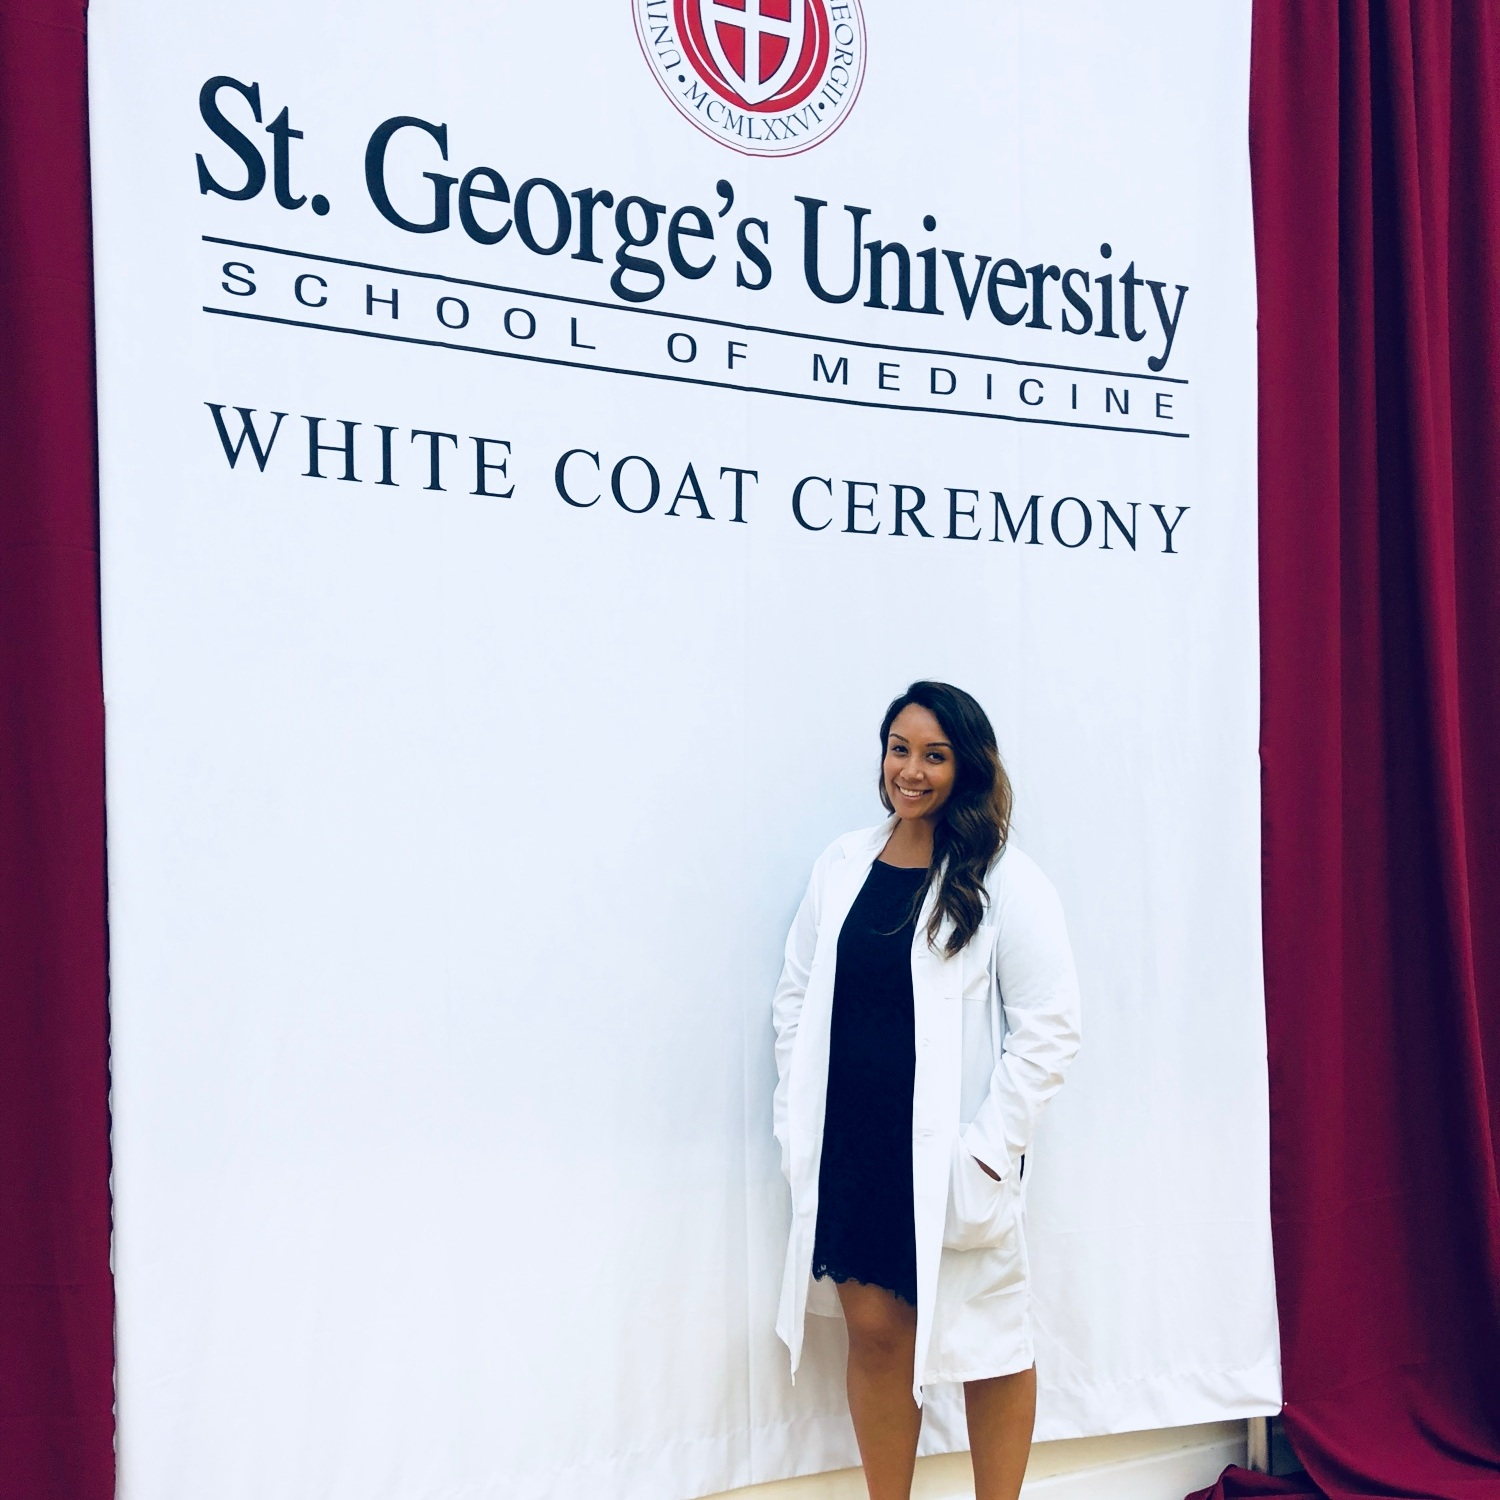 The official white coat ceremony at St. George's University School of Medicine!